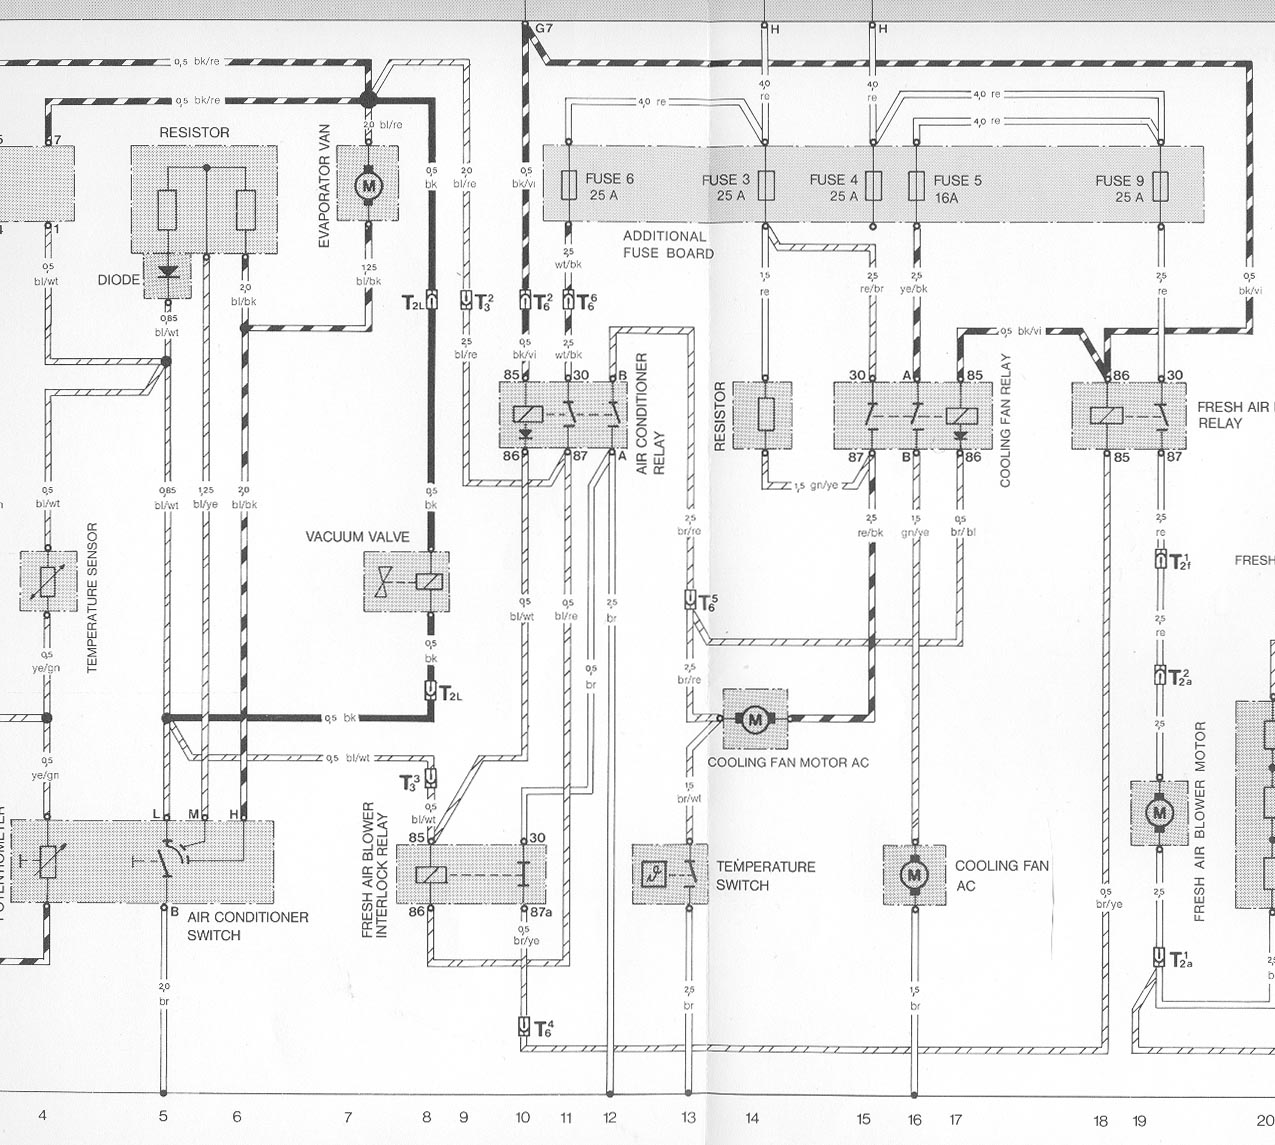 early_cooling_fan_with_ac cooling fan operation and troubleshooting Hayden Electric Fan Wiring Diagram at mifinder.co